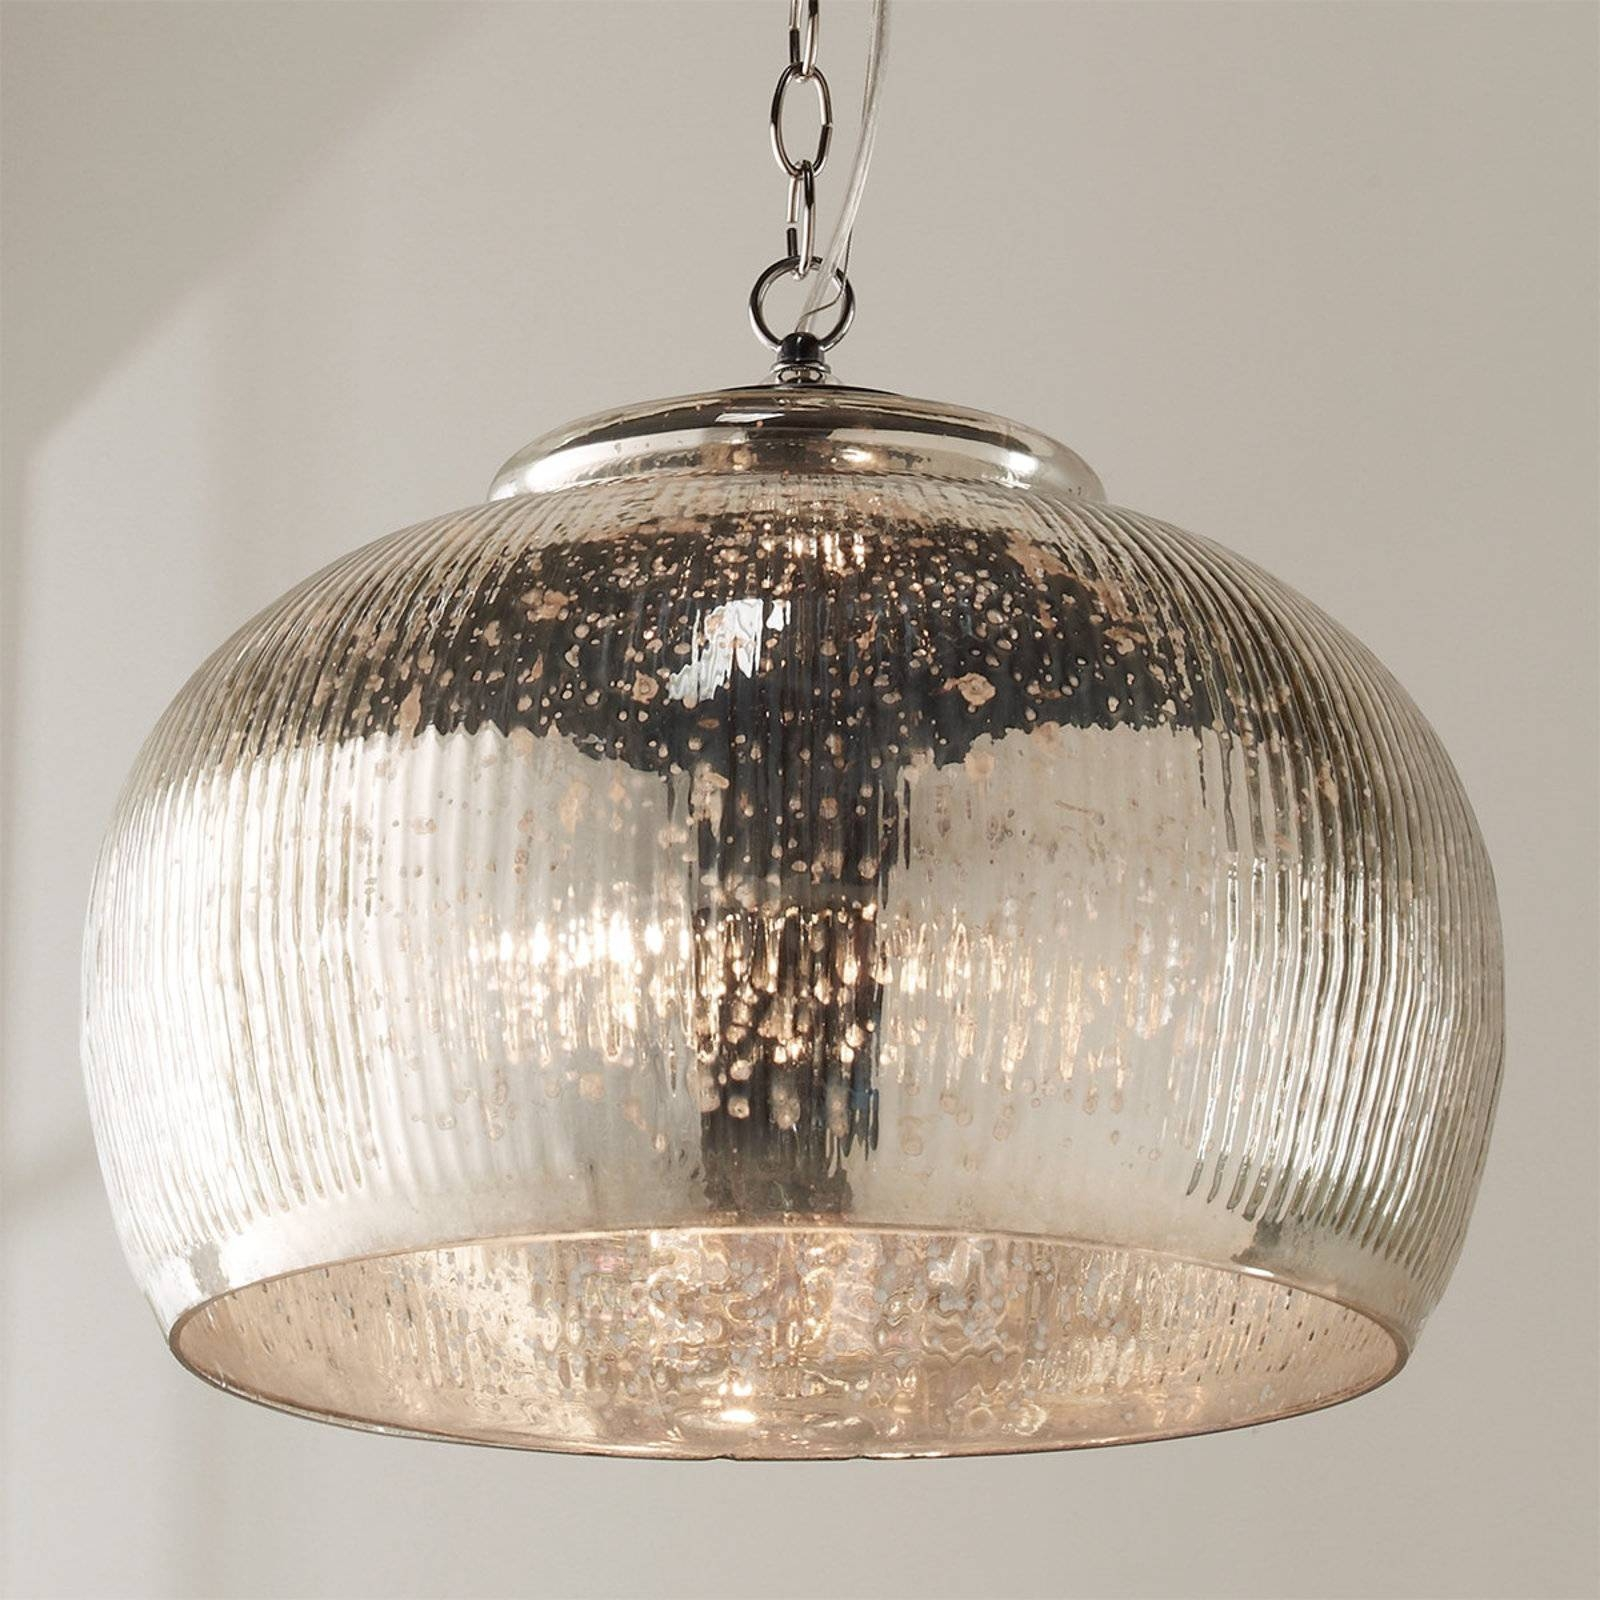 shade pin champagne glass or of colored fixtures is a mercury toast our light lamp worthy with